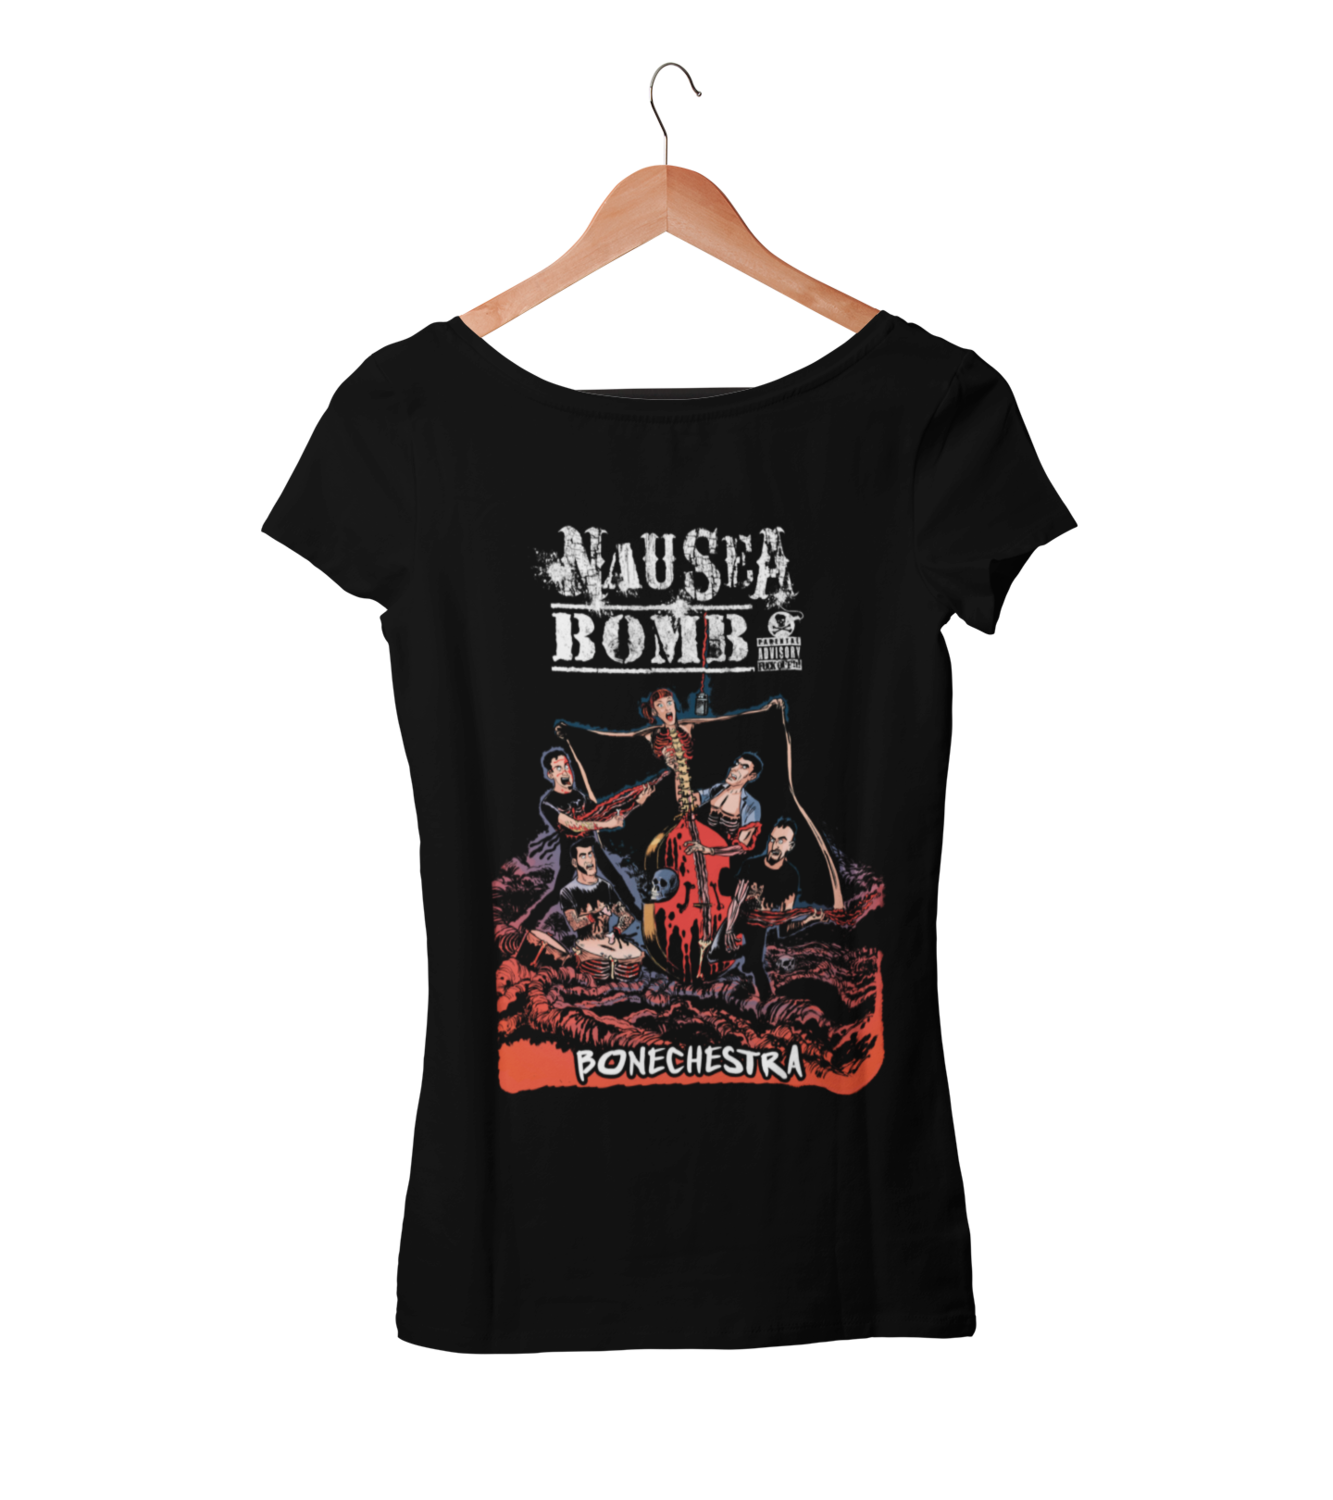 "NAUSEA BOMB ""Bonechestra"" tshirt for WOMEN"